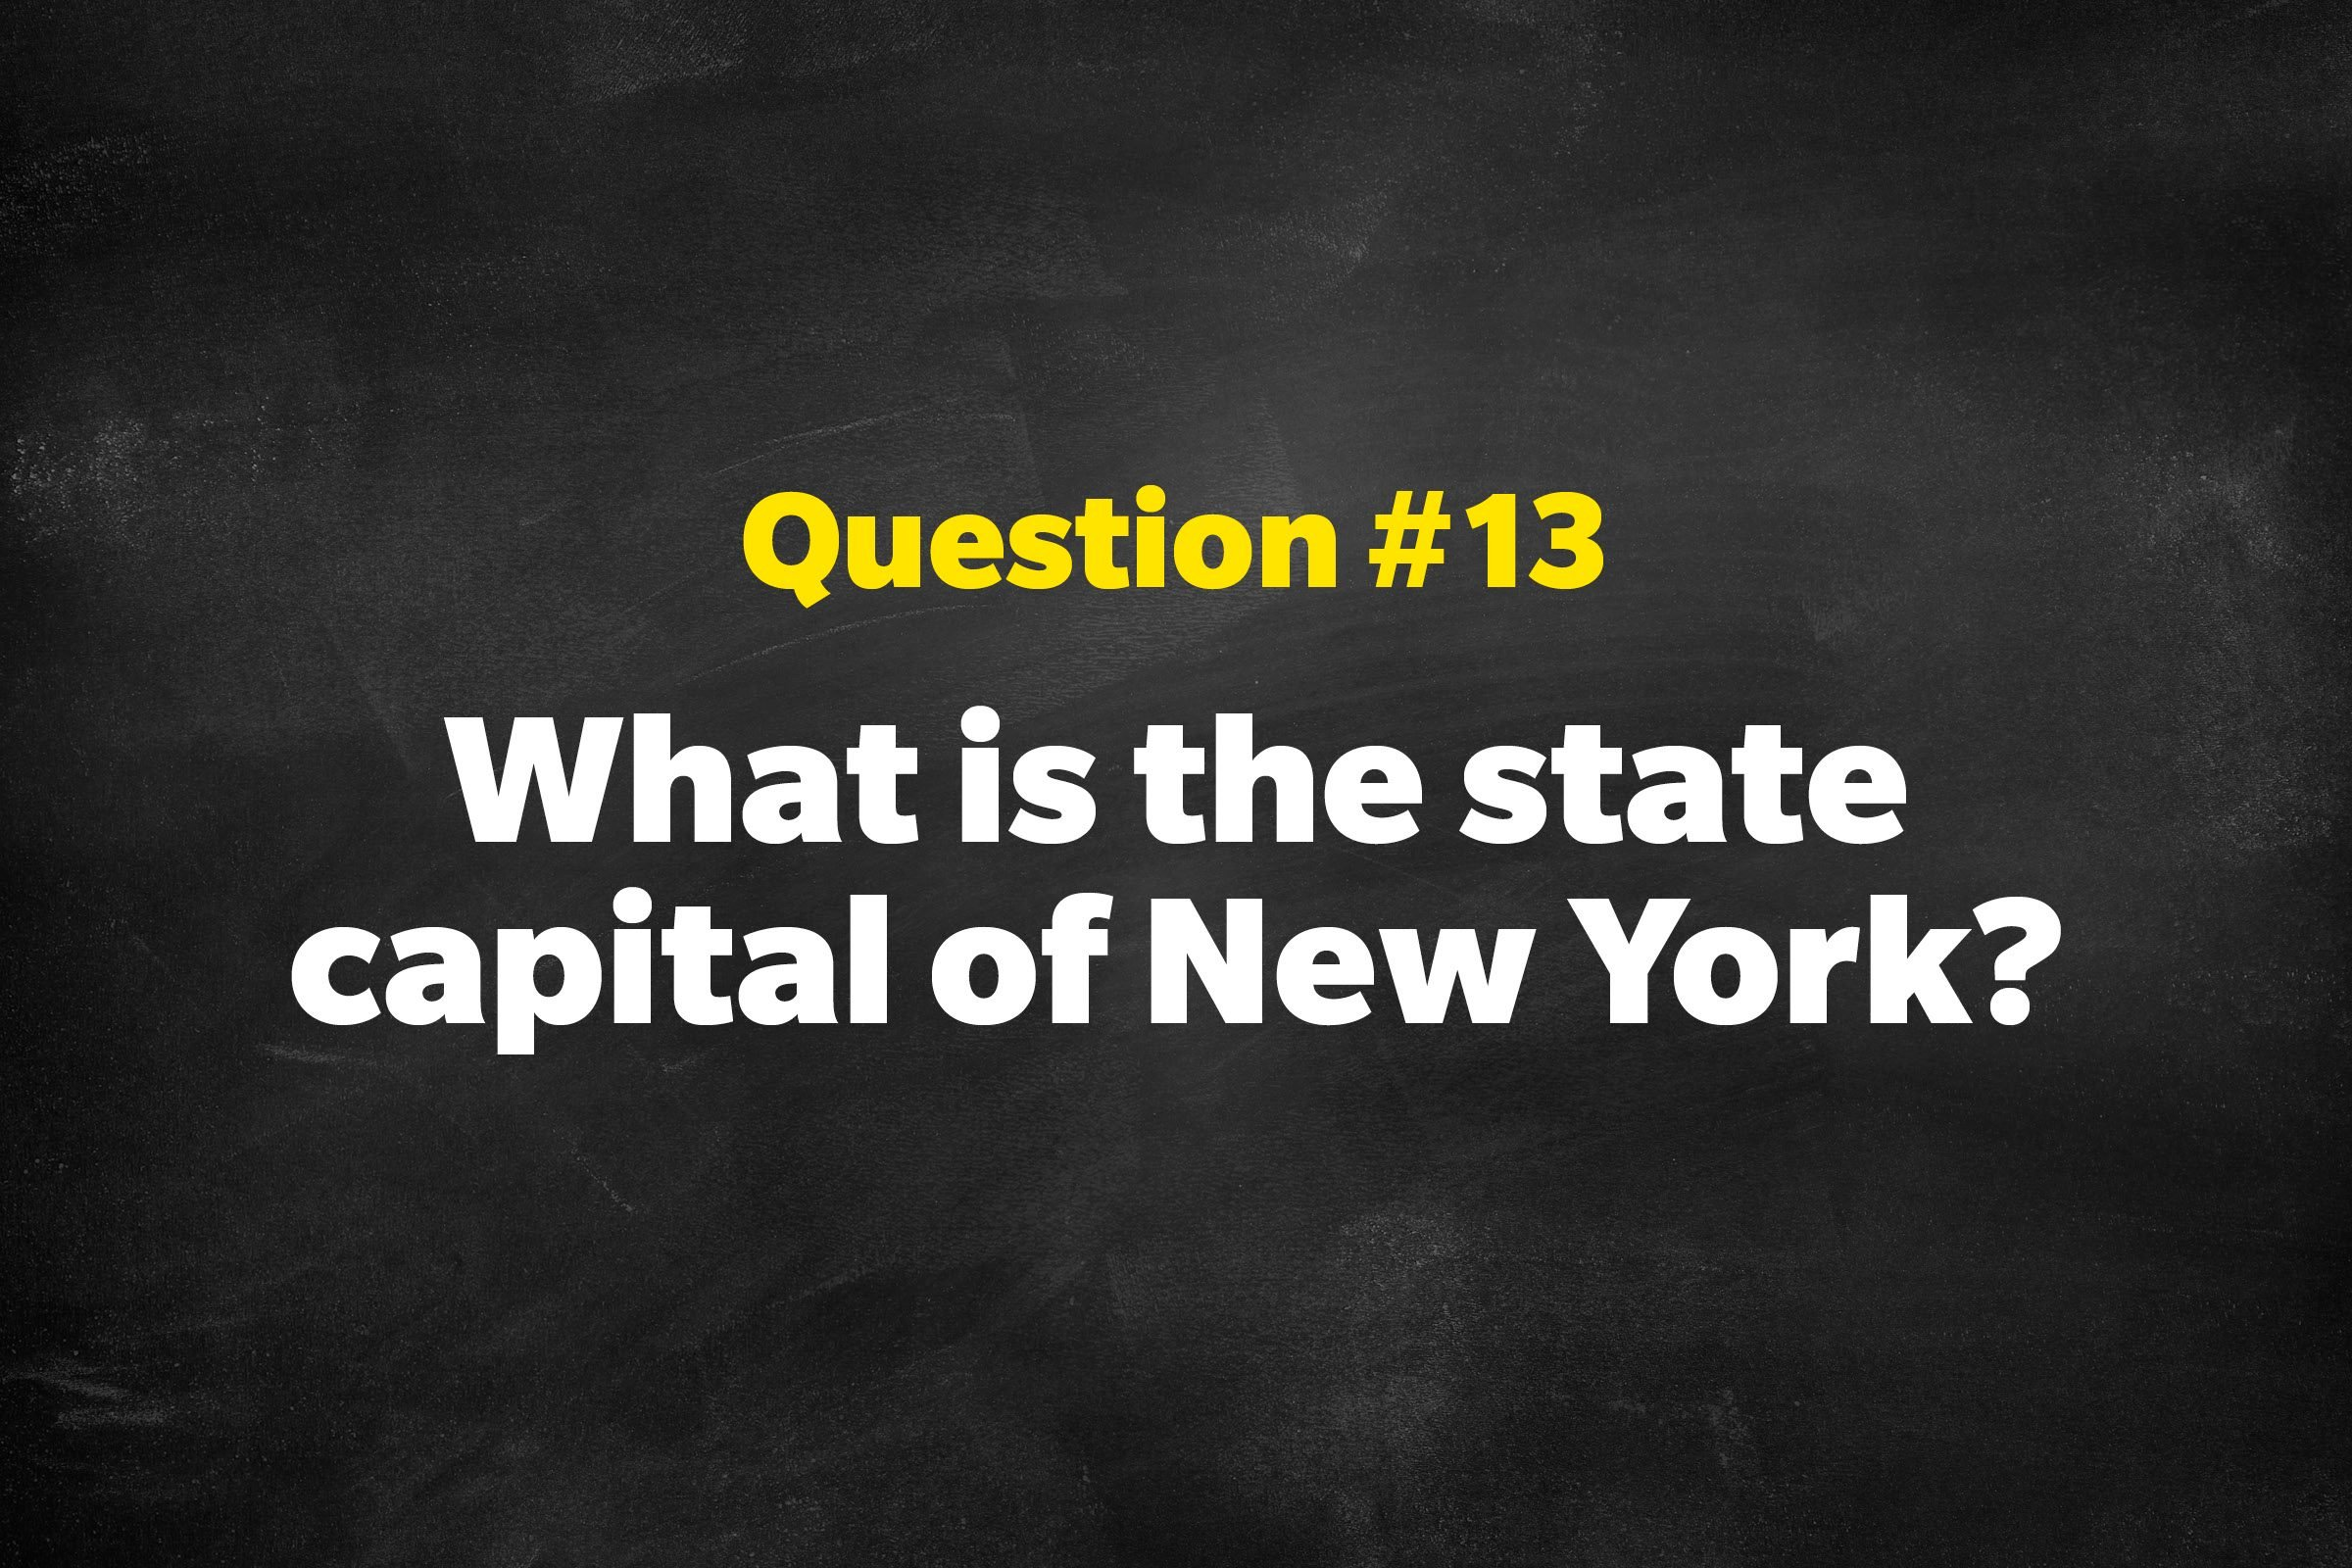 Question #13: What is the state capital of New York?